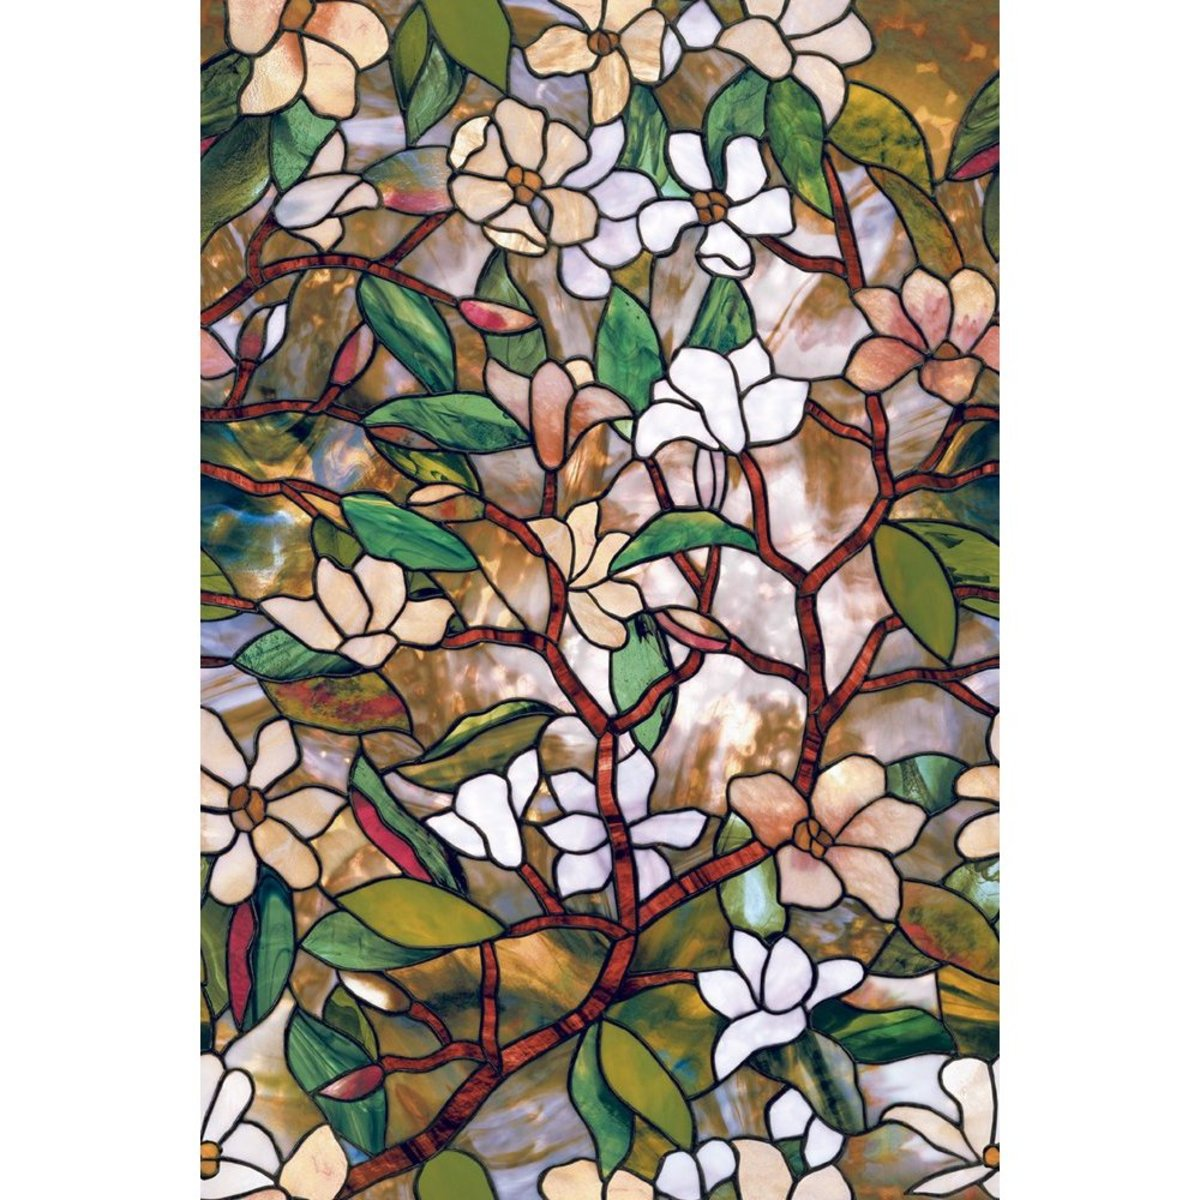 Stained glass window film. It's repositionable and easy to apply. Cut it to any shape! $19 through the Amazon link.